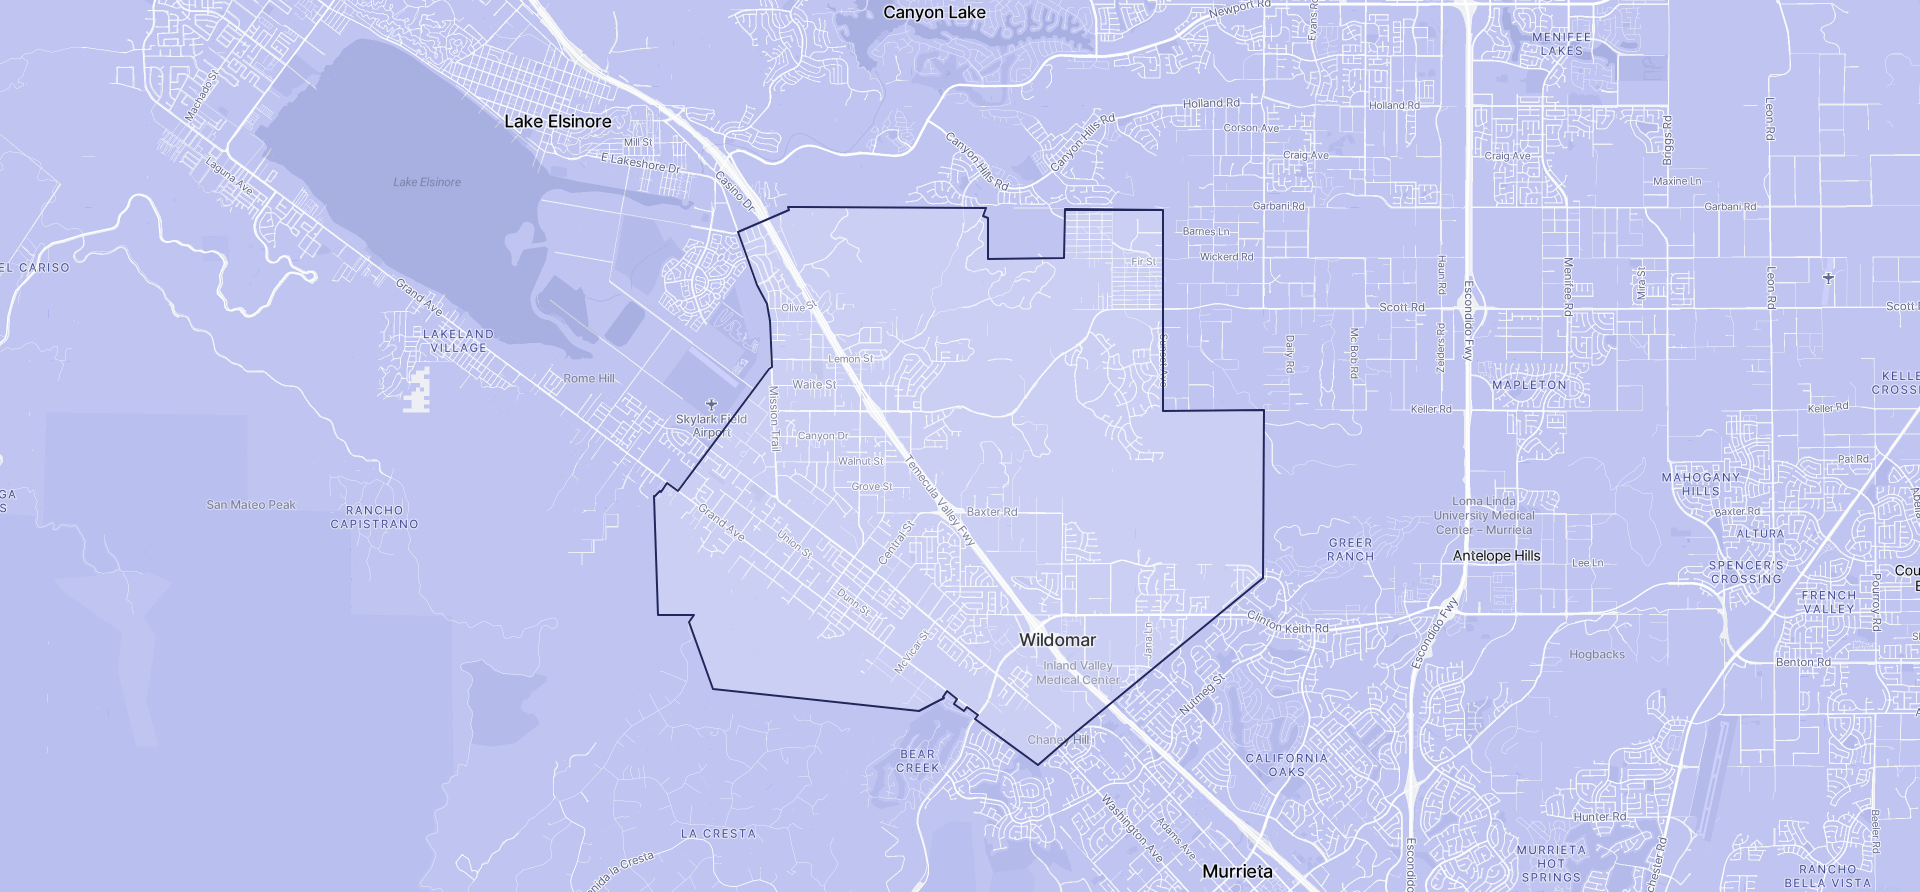 Image of Wildomar boundaries on a map.